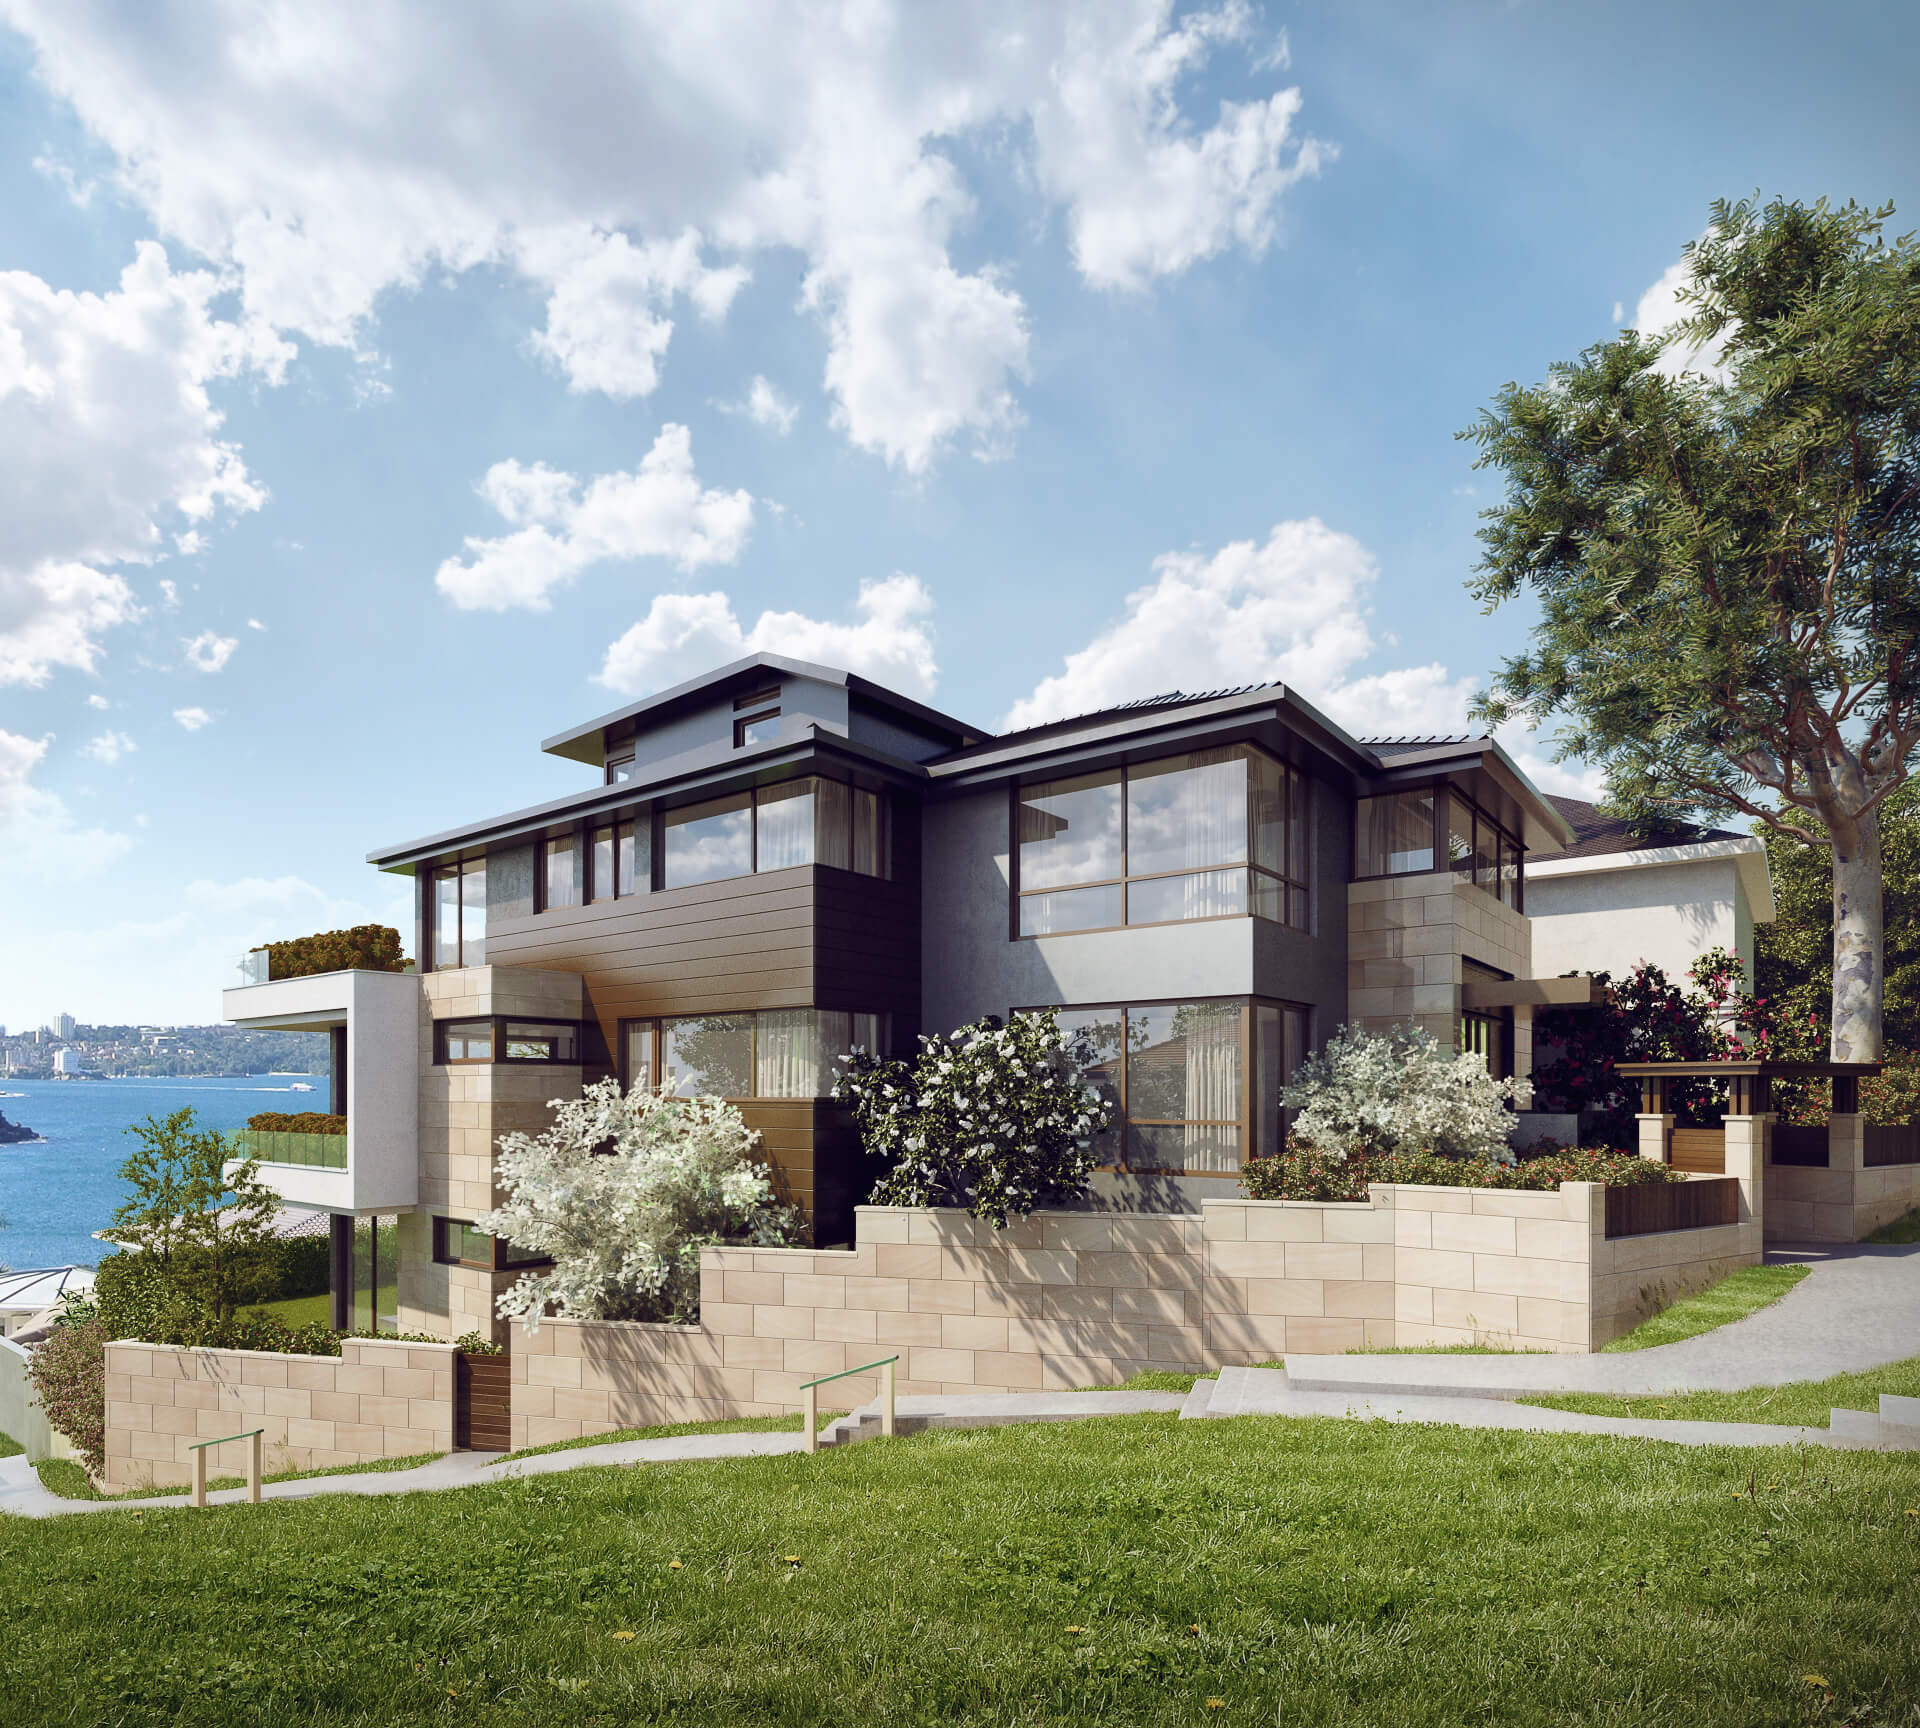 A Residential House Rendering for Real Estate Marketing